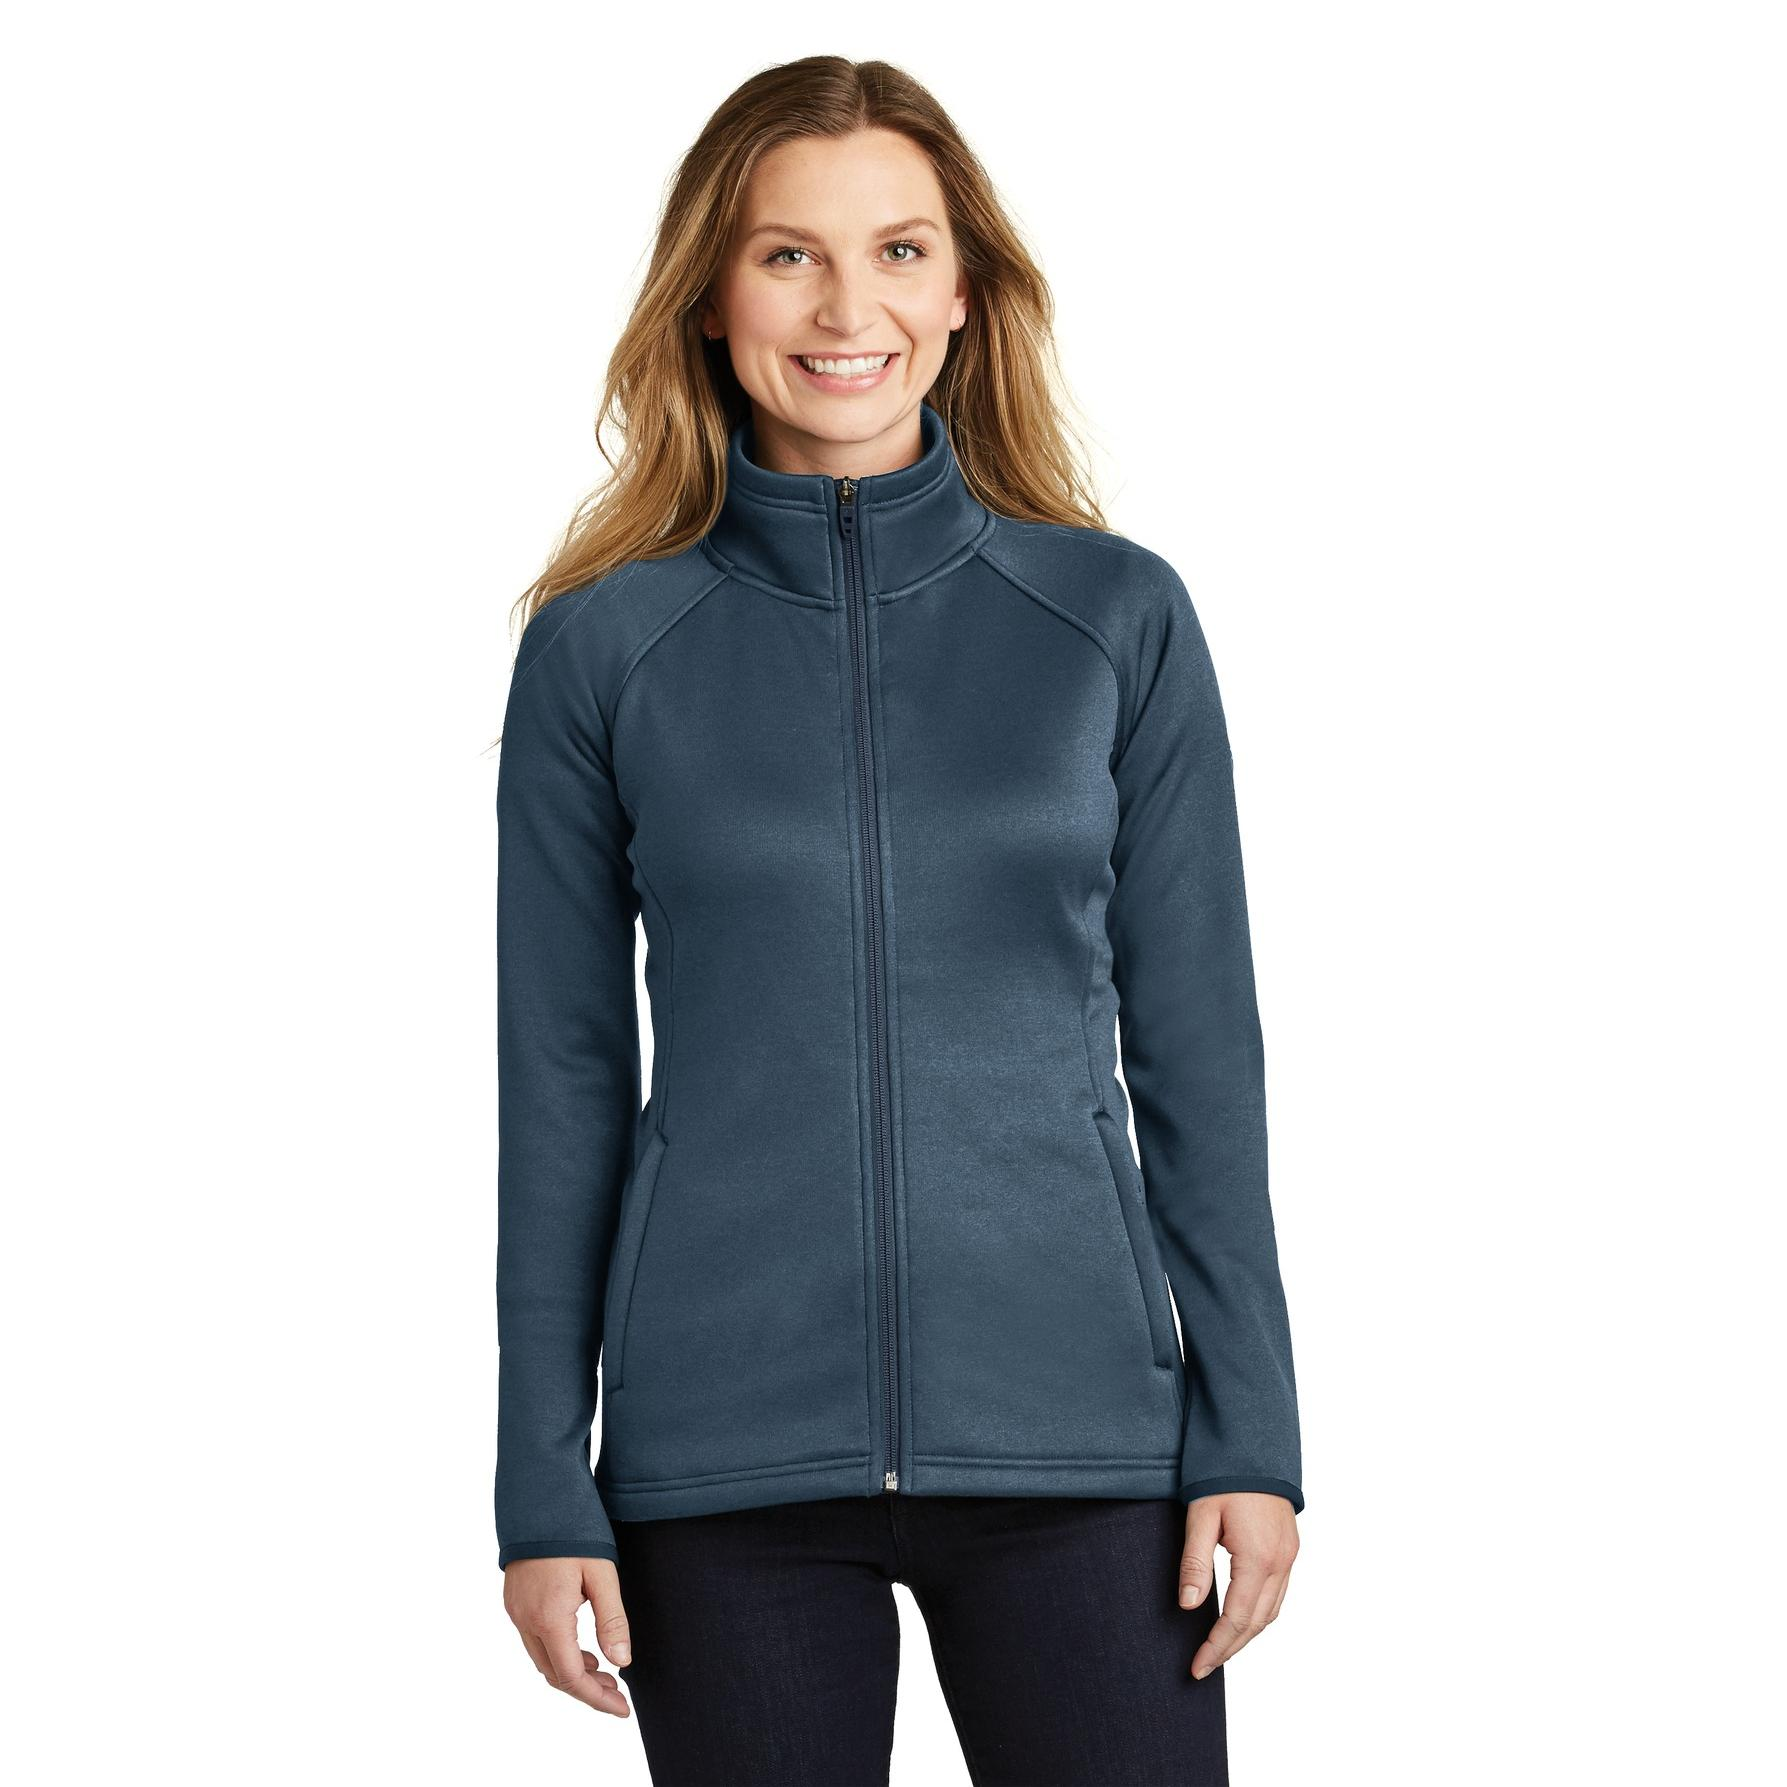 20d062743 The North Face NF0A3LH9 Ladies Canyon Flats Stretch Fleece Jacket - Urban  Navy Heather